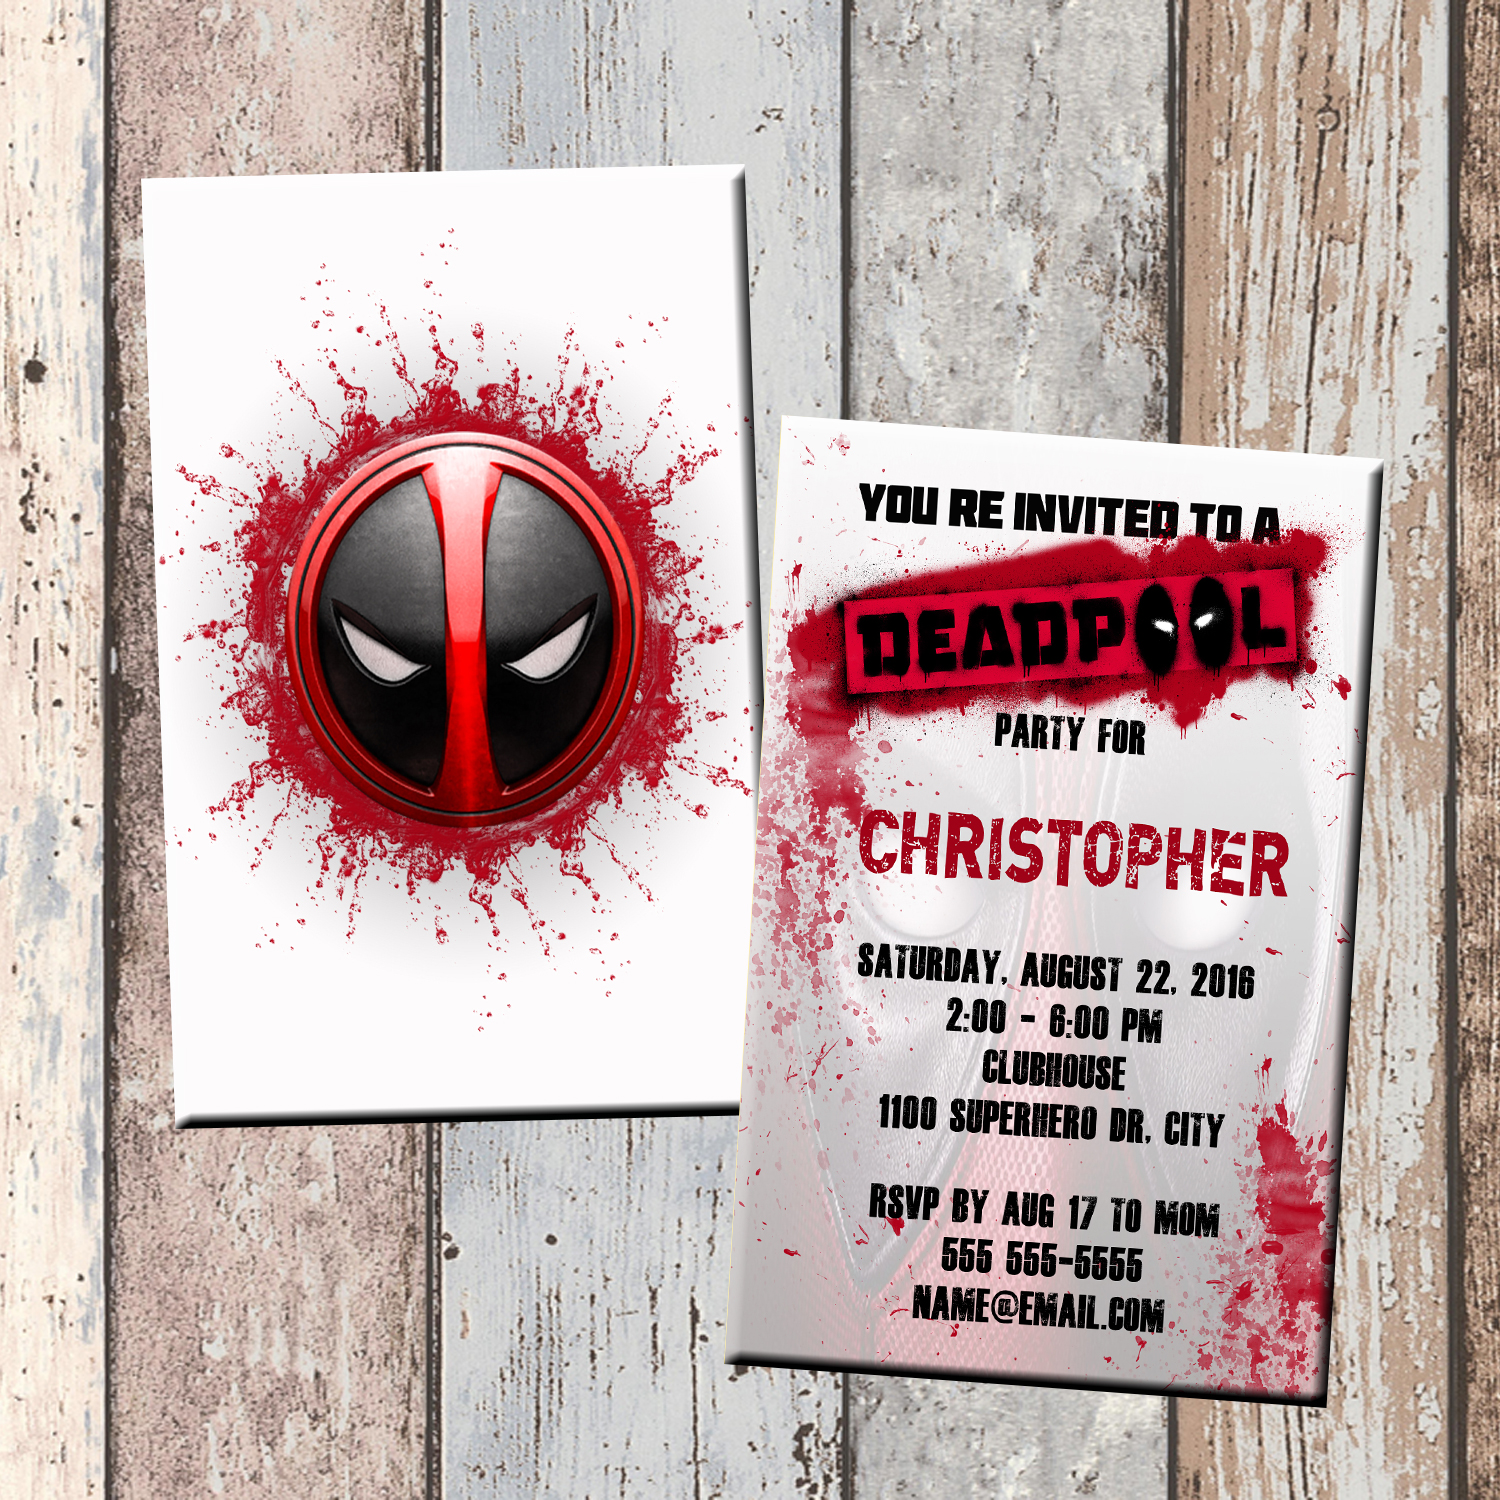 Deadpool Superhero Personalized Birthday Invitation 2 Sided Card Party